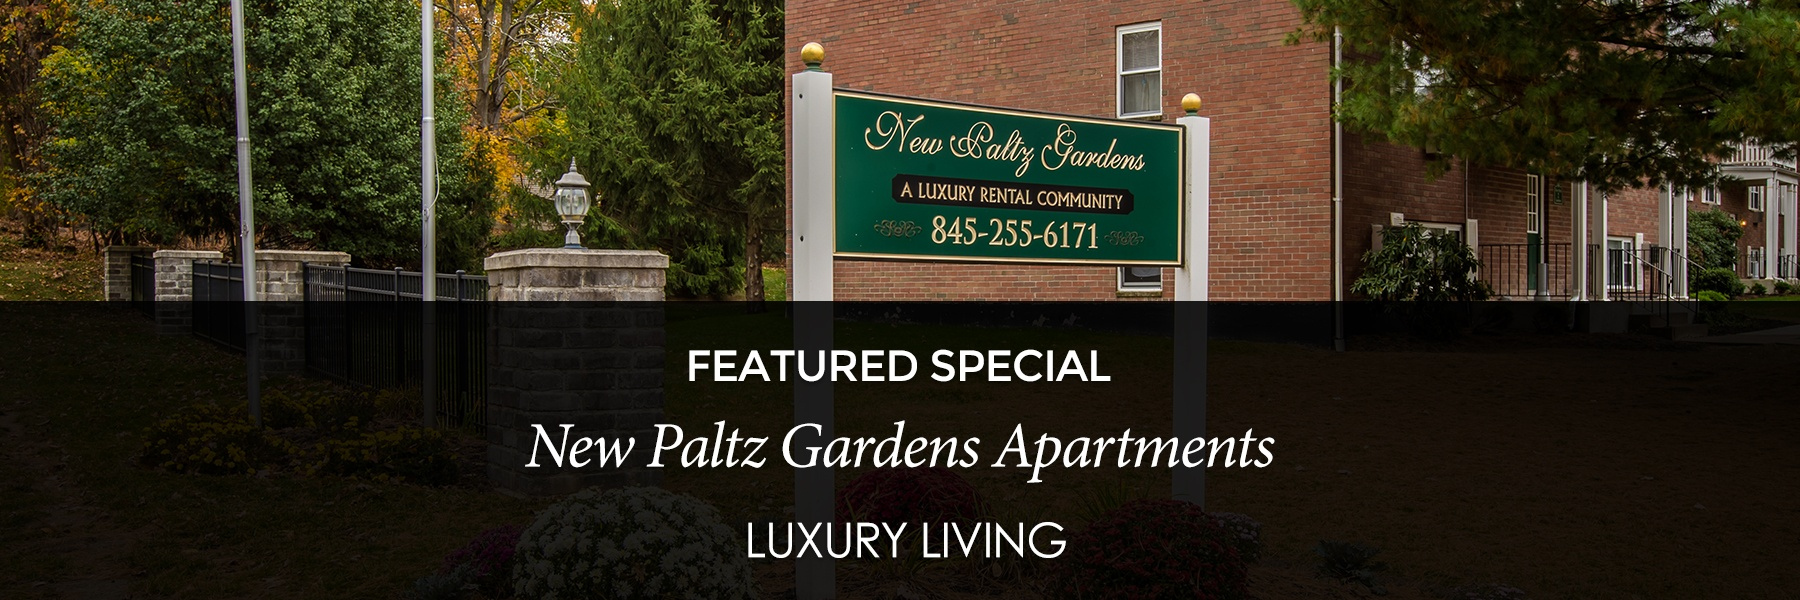 New Paltz Gardens Apartments For Rent in New Paltz, NY Specials